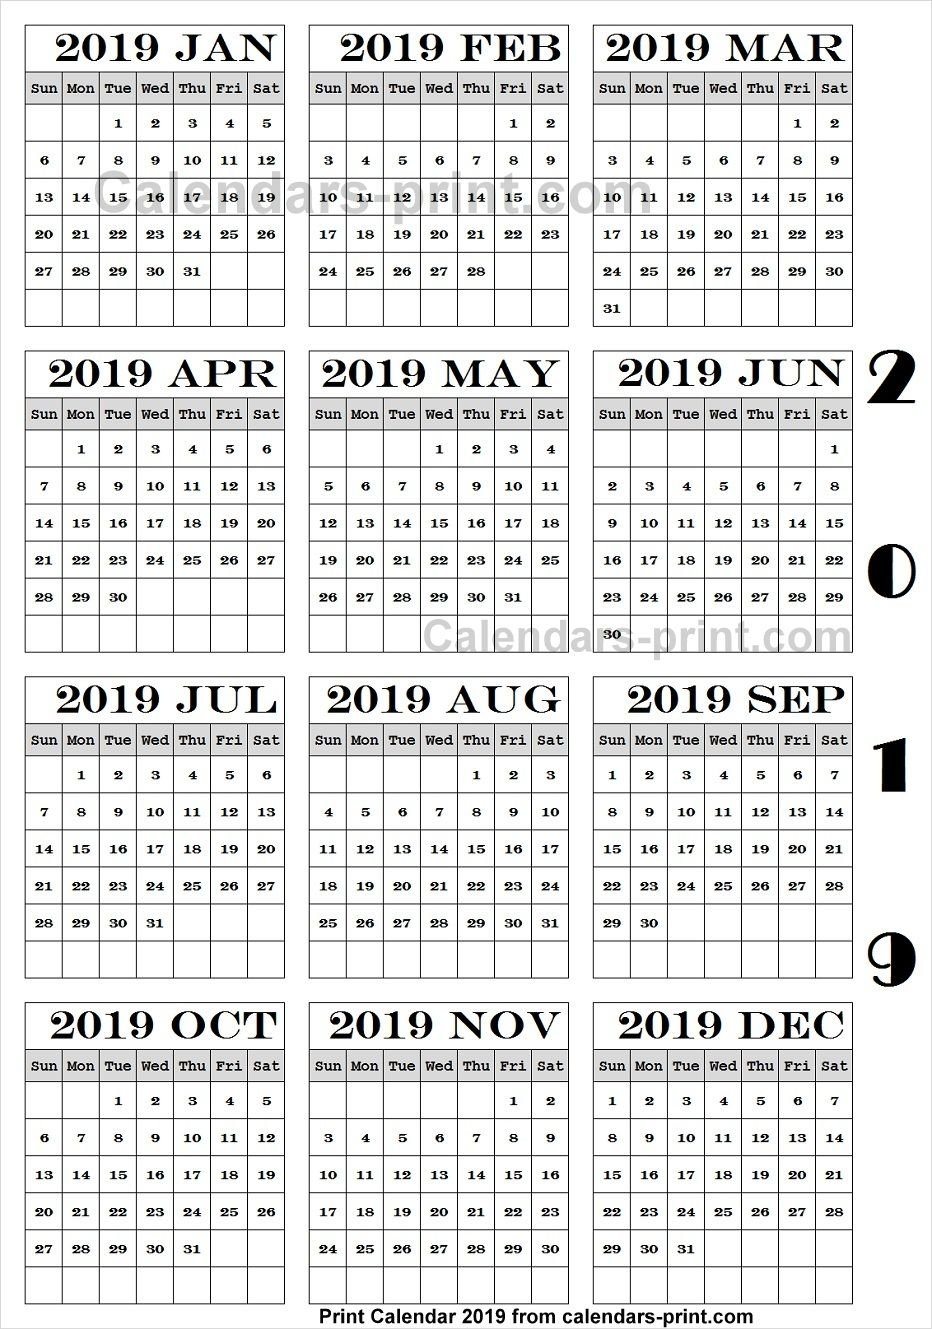 Calendar 2019 Pdf Download | 2019 Yearly Calendar | Print Calendar Calendar 2019 Romana